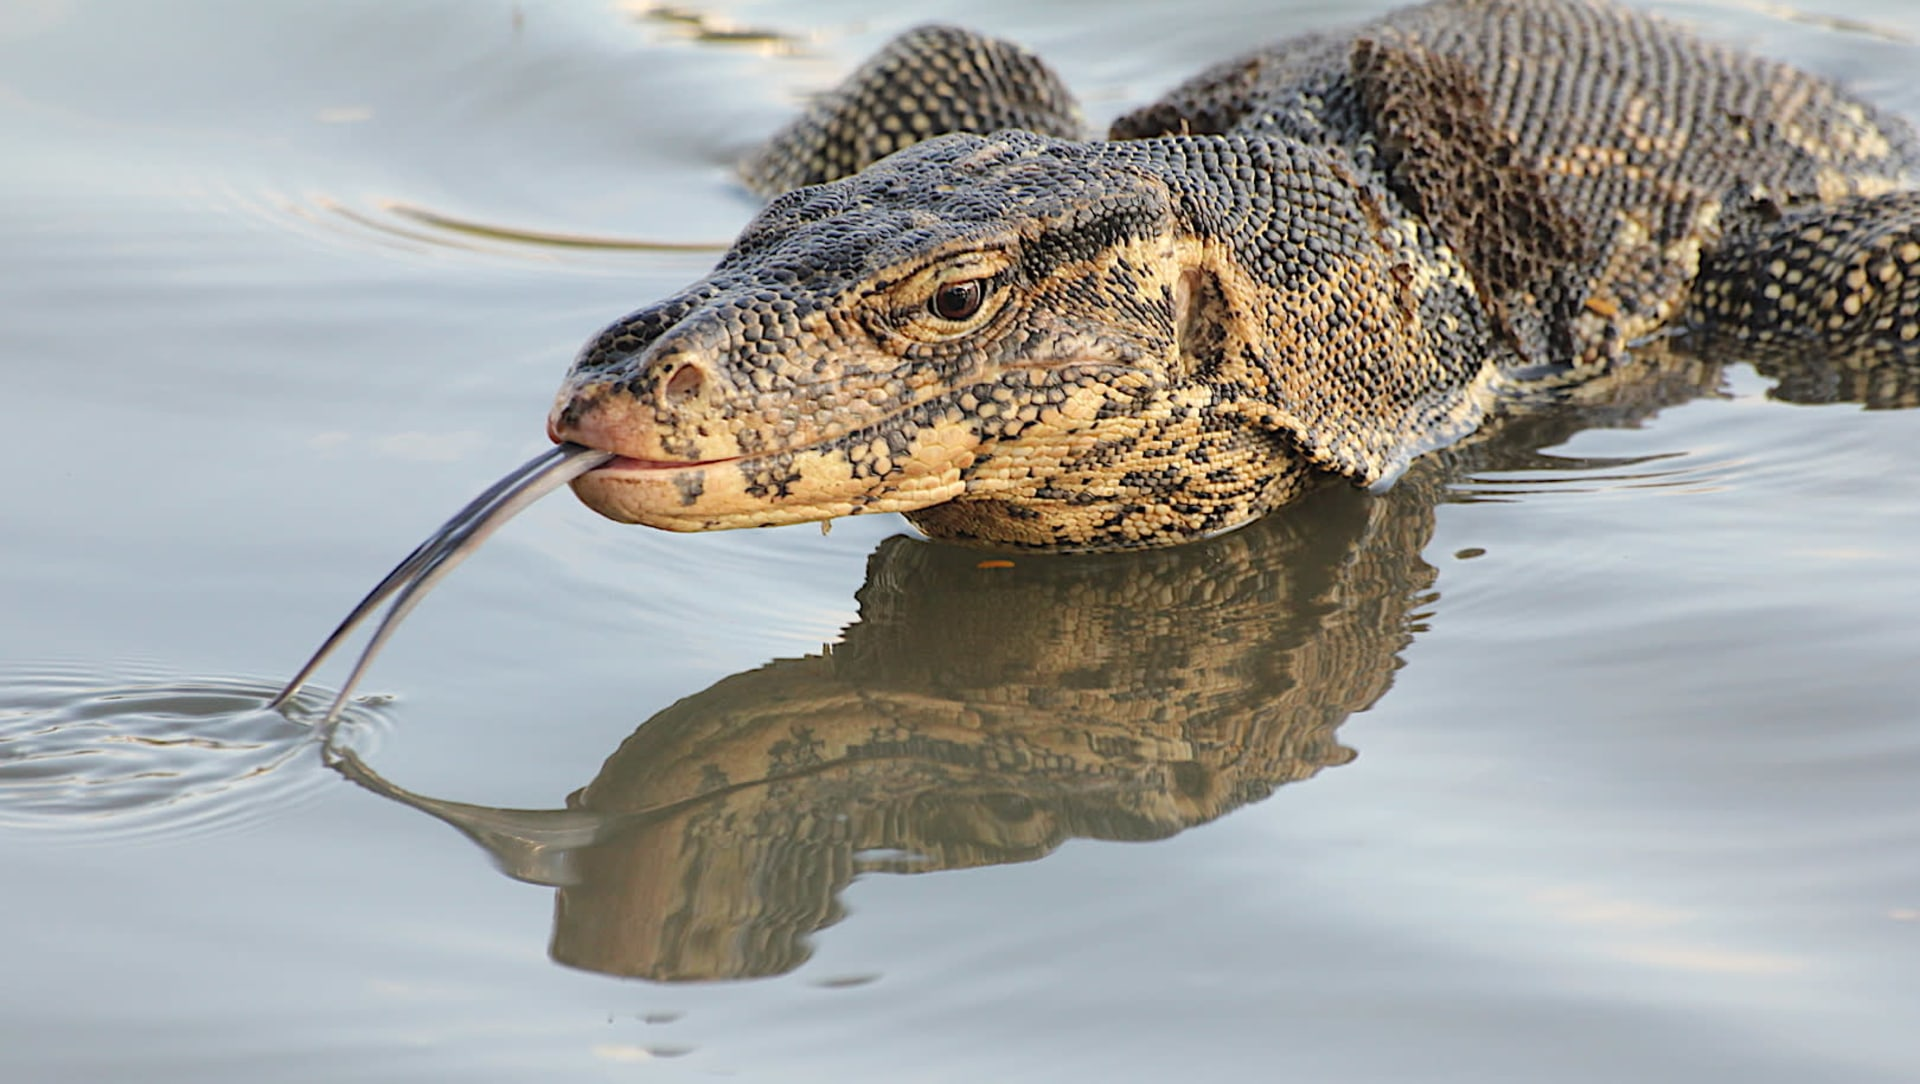 Living Dragons: Weapons, Defences and the Water Monitor Lizard